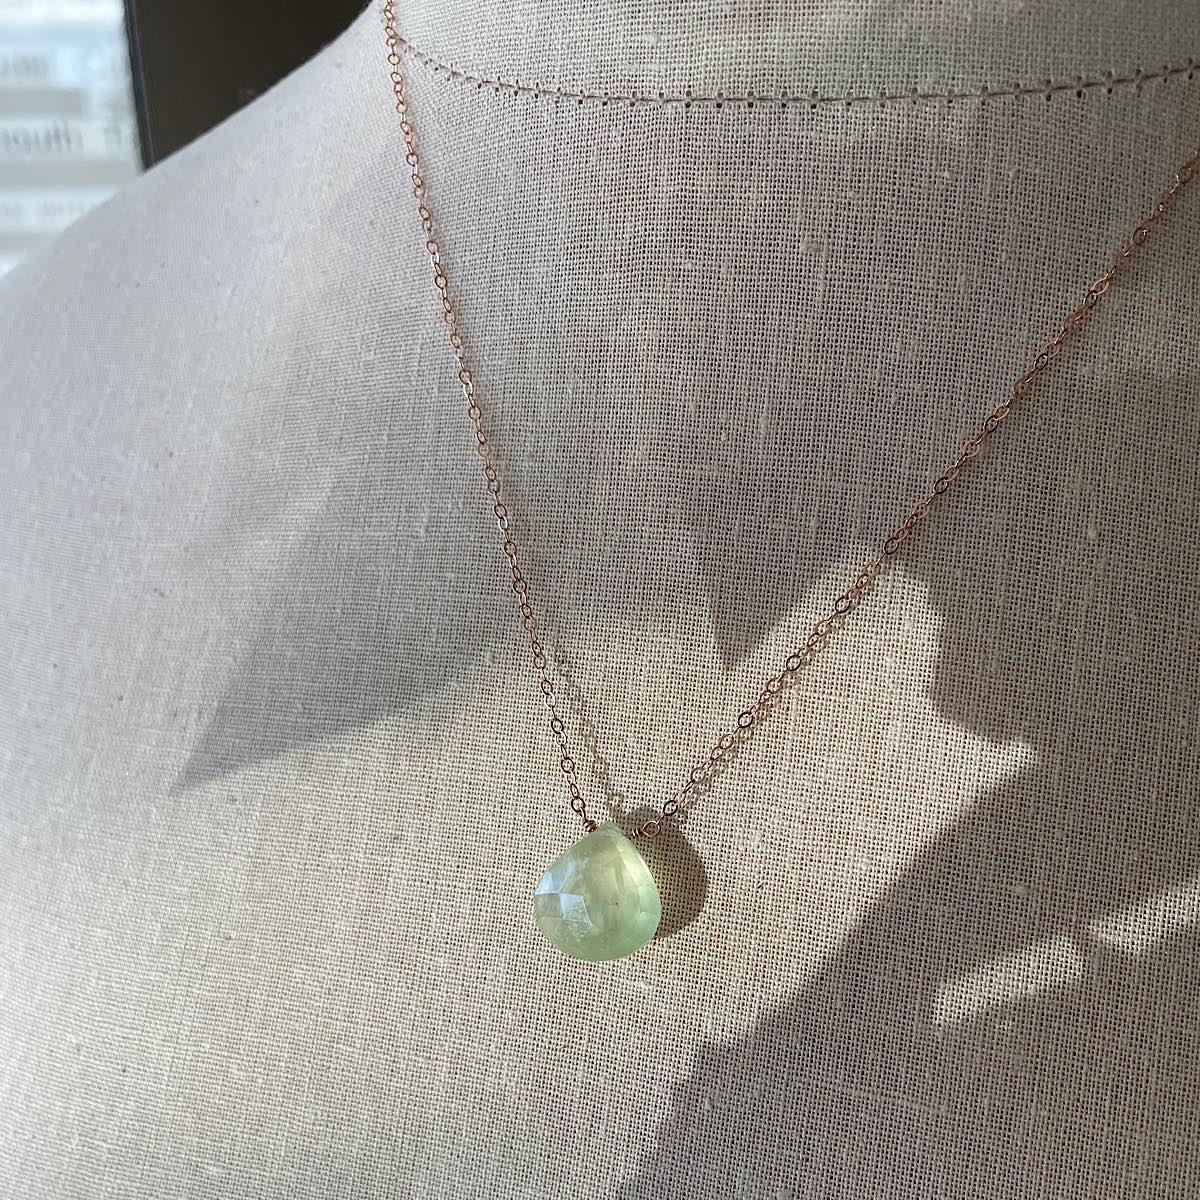 Prehnite Gemstone Necklace